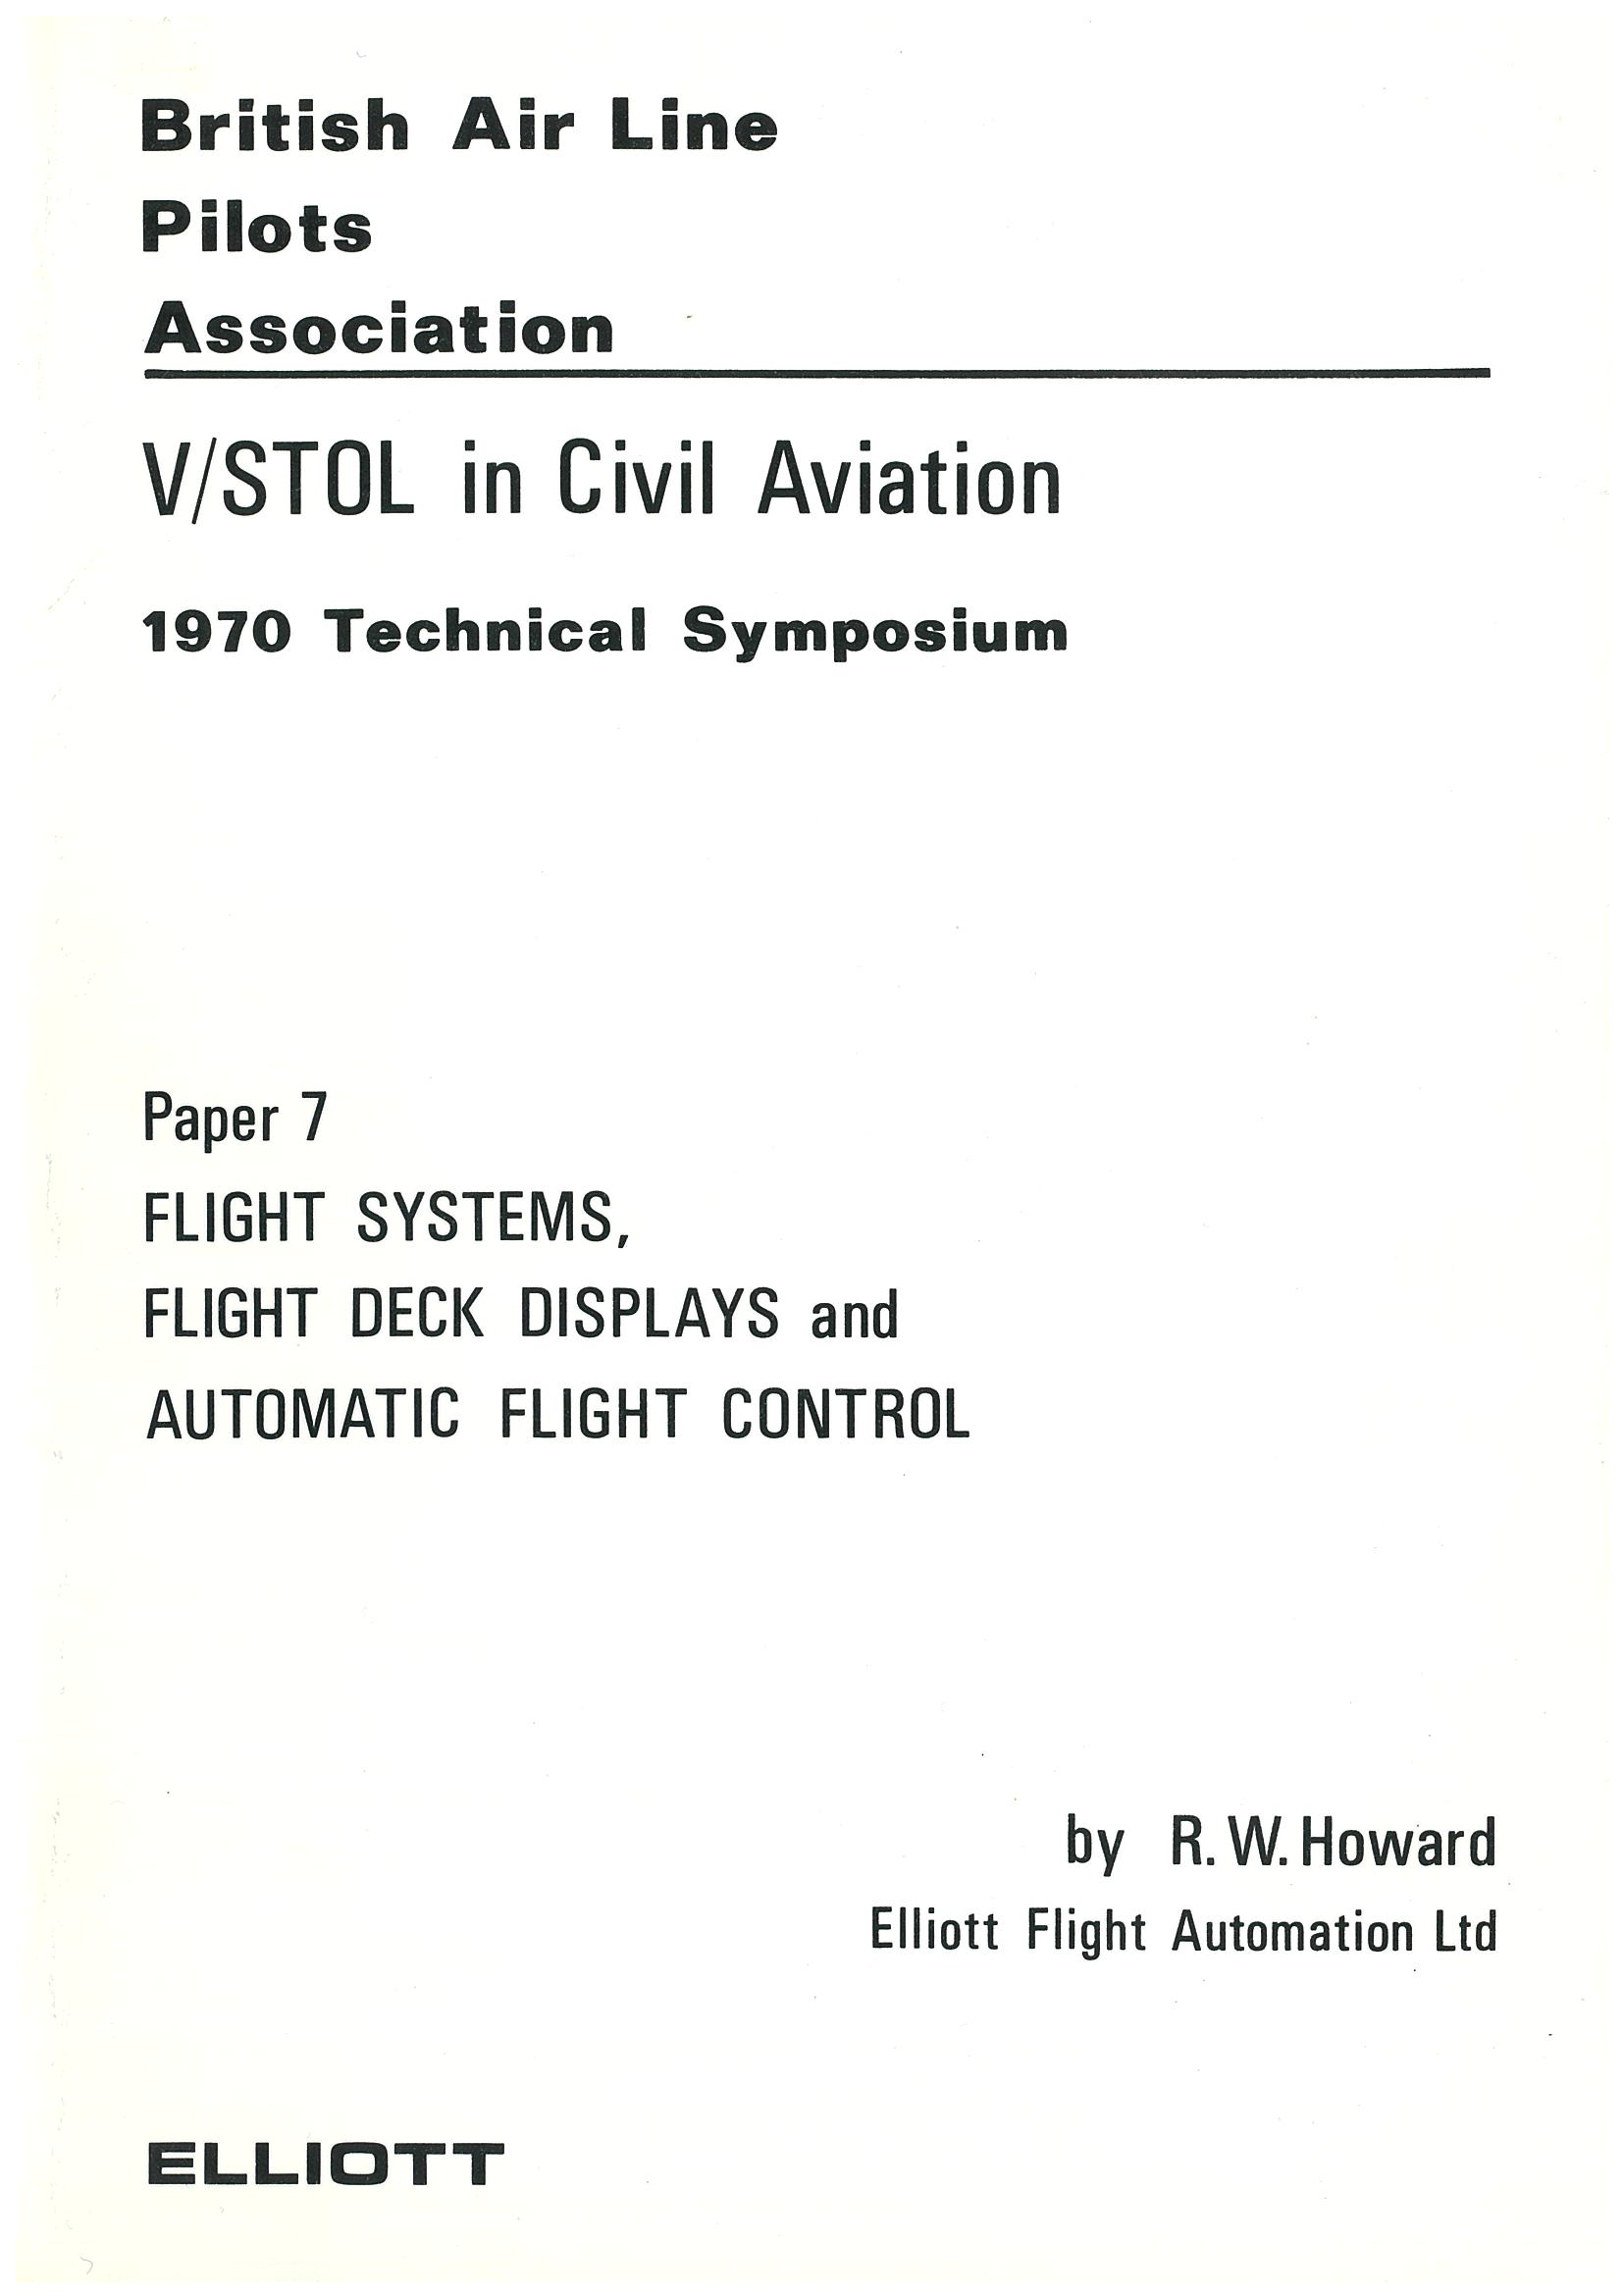 V/STOL in Civil Aviation.